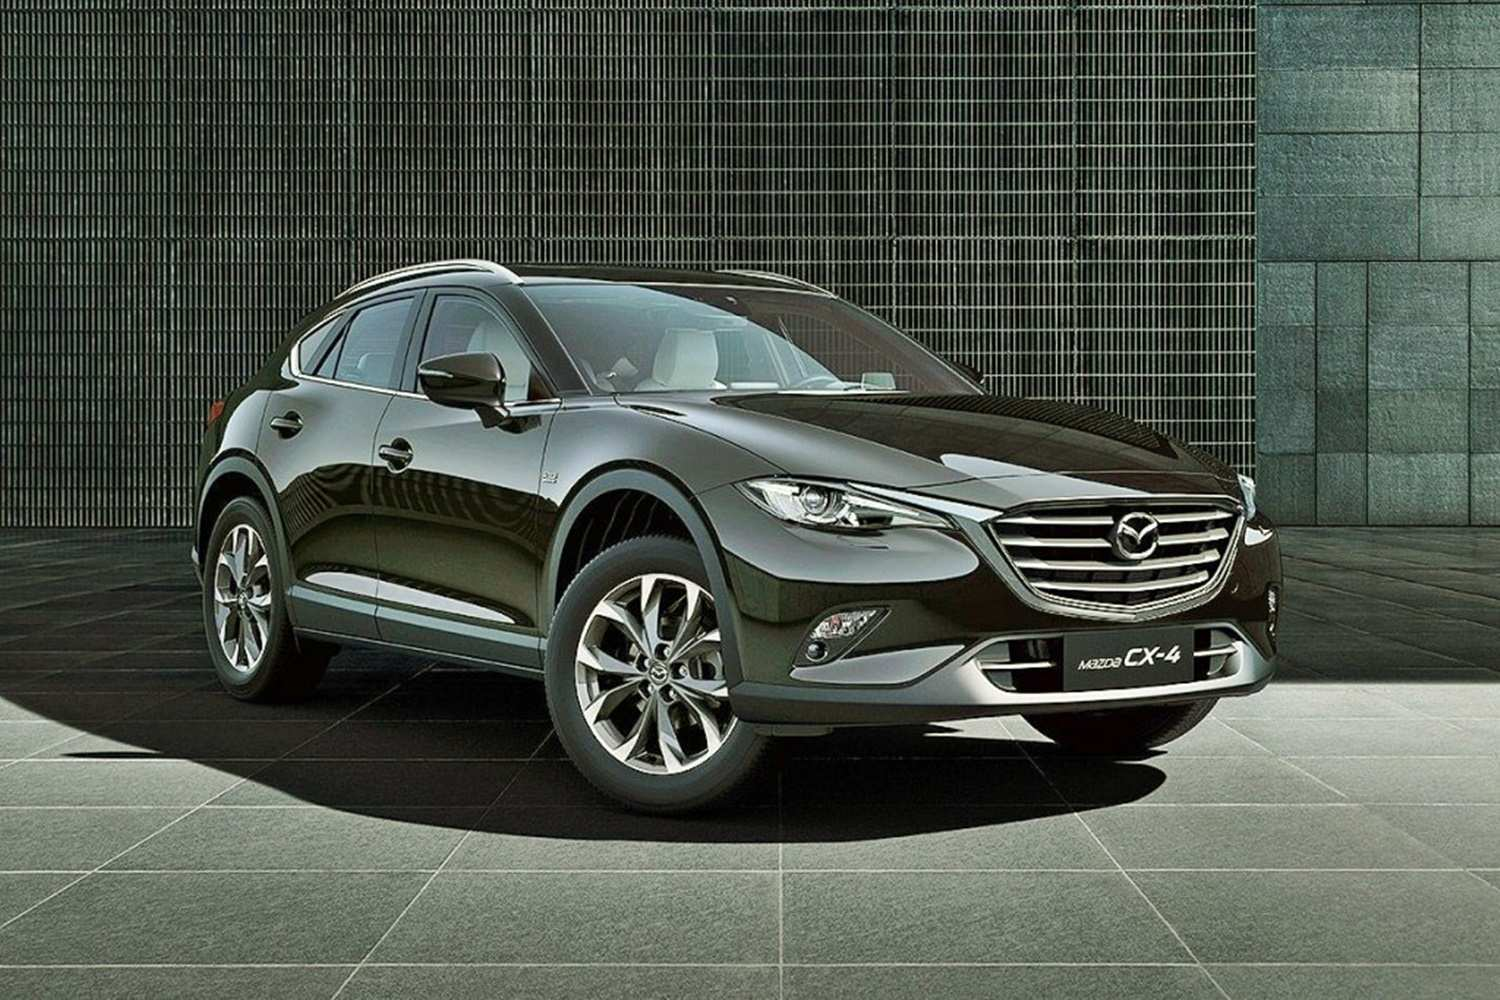 74 All New When Will 2020 Mazda Cx 5 Be Released New Model And Performance